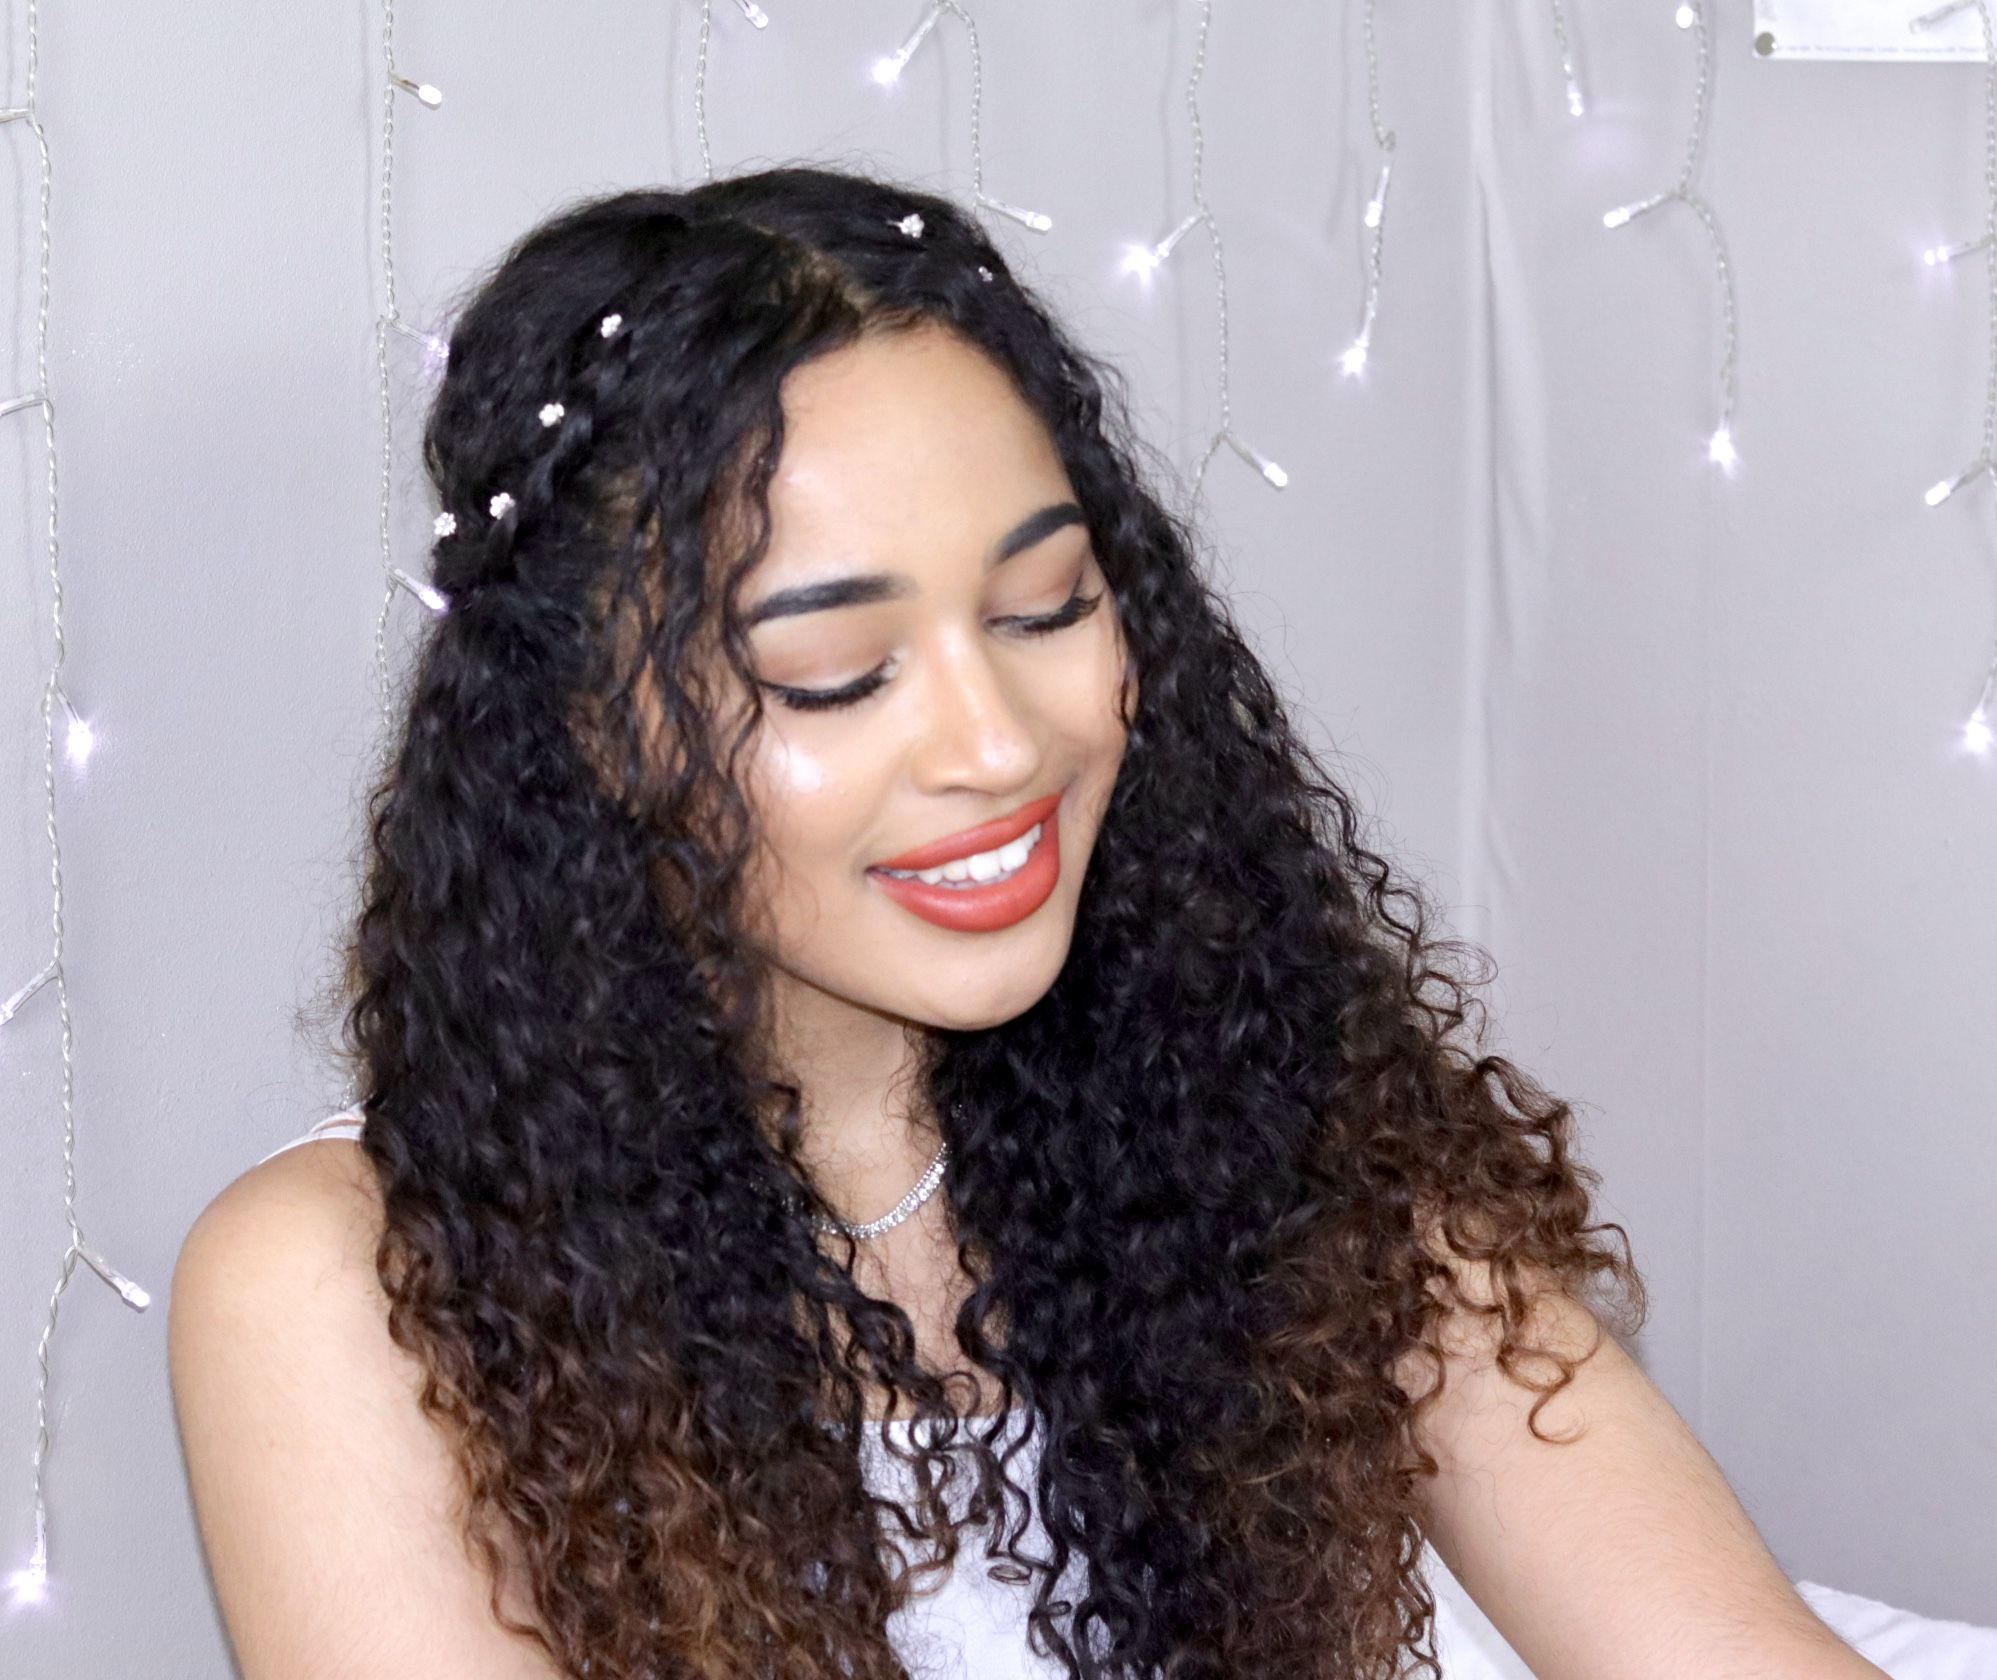 boho curly hairstyles for prom, weddings, graduation